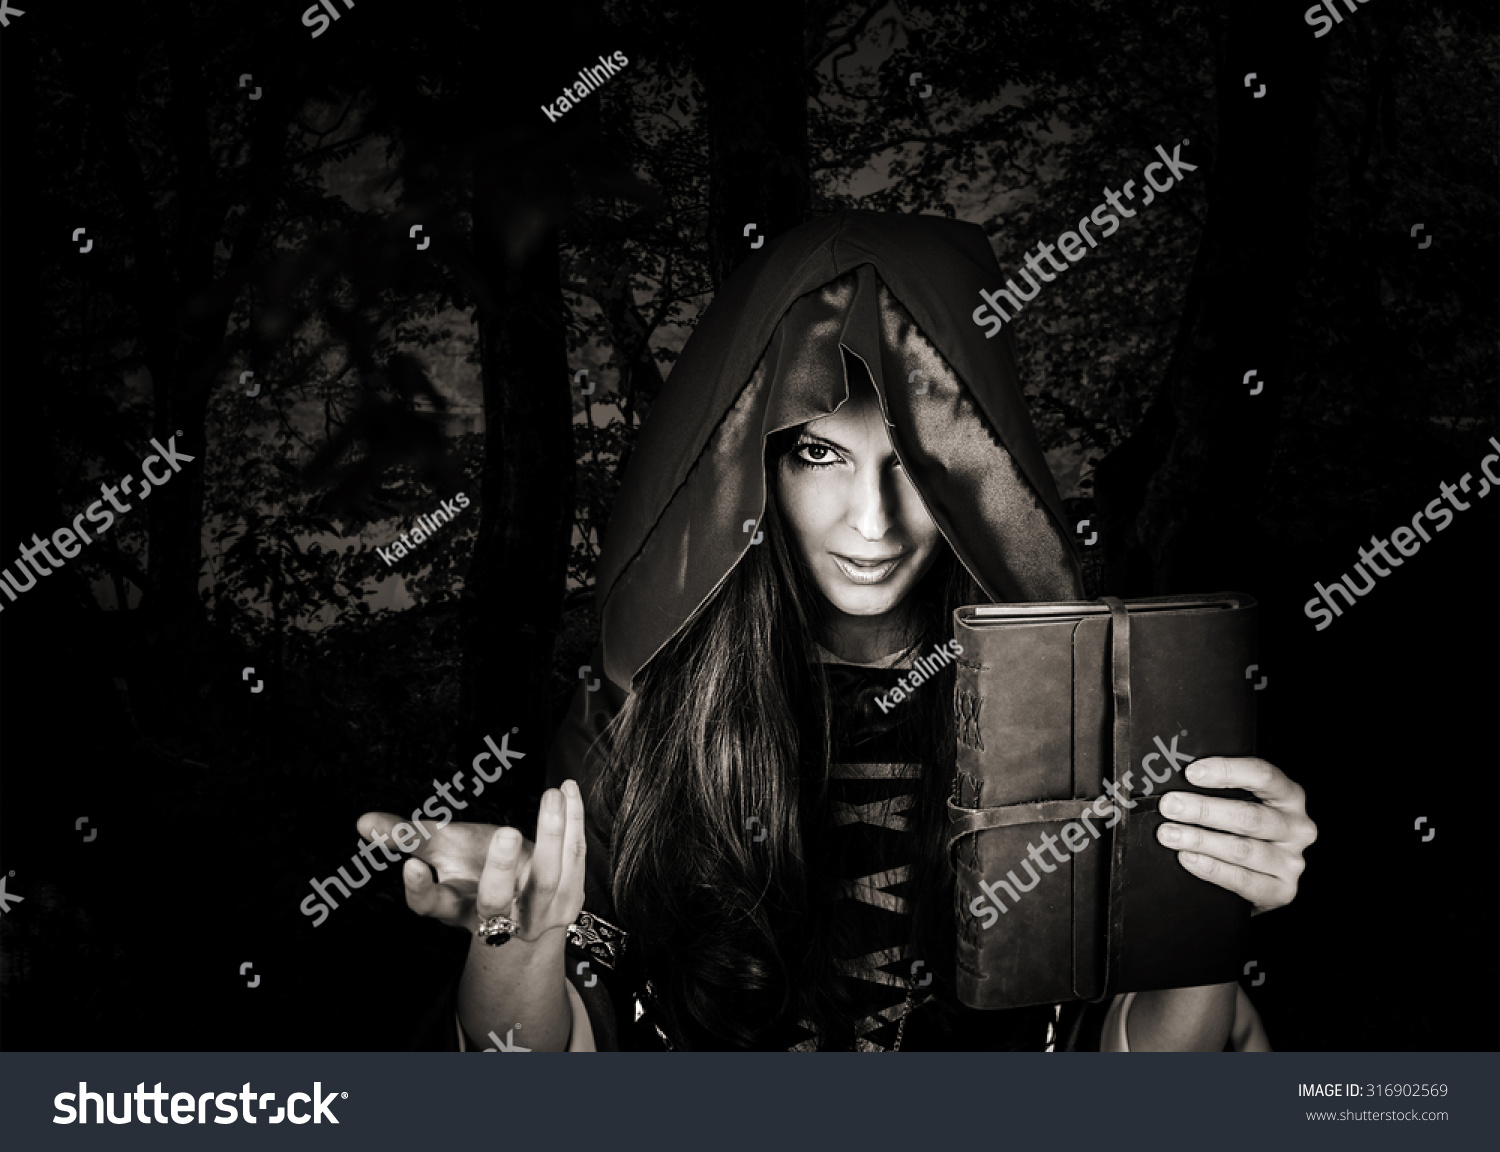 Vintage witch halloween photography stock